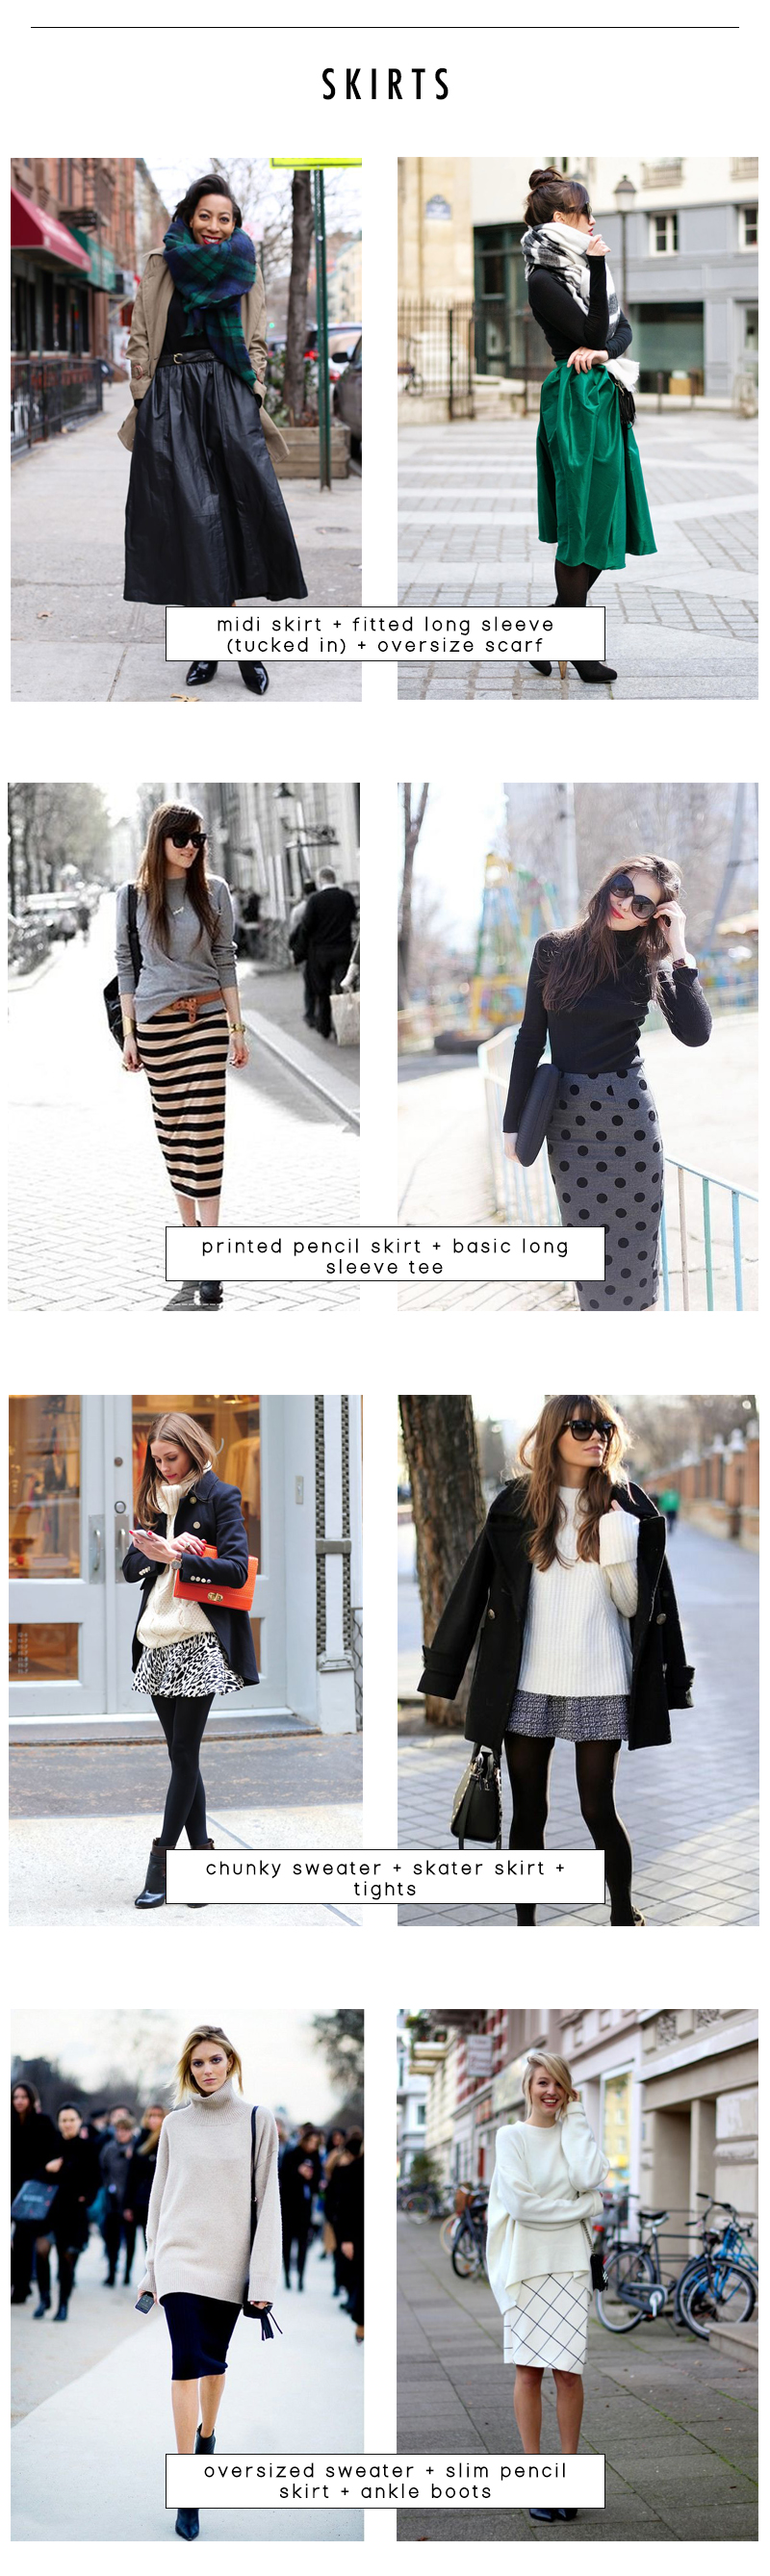 18-outfit-recipes-for-fall-skirts